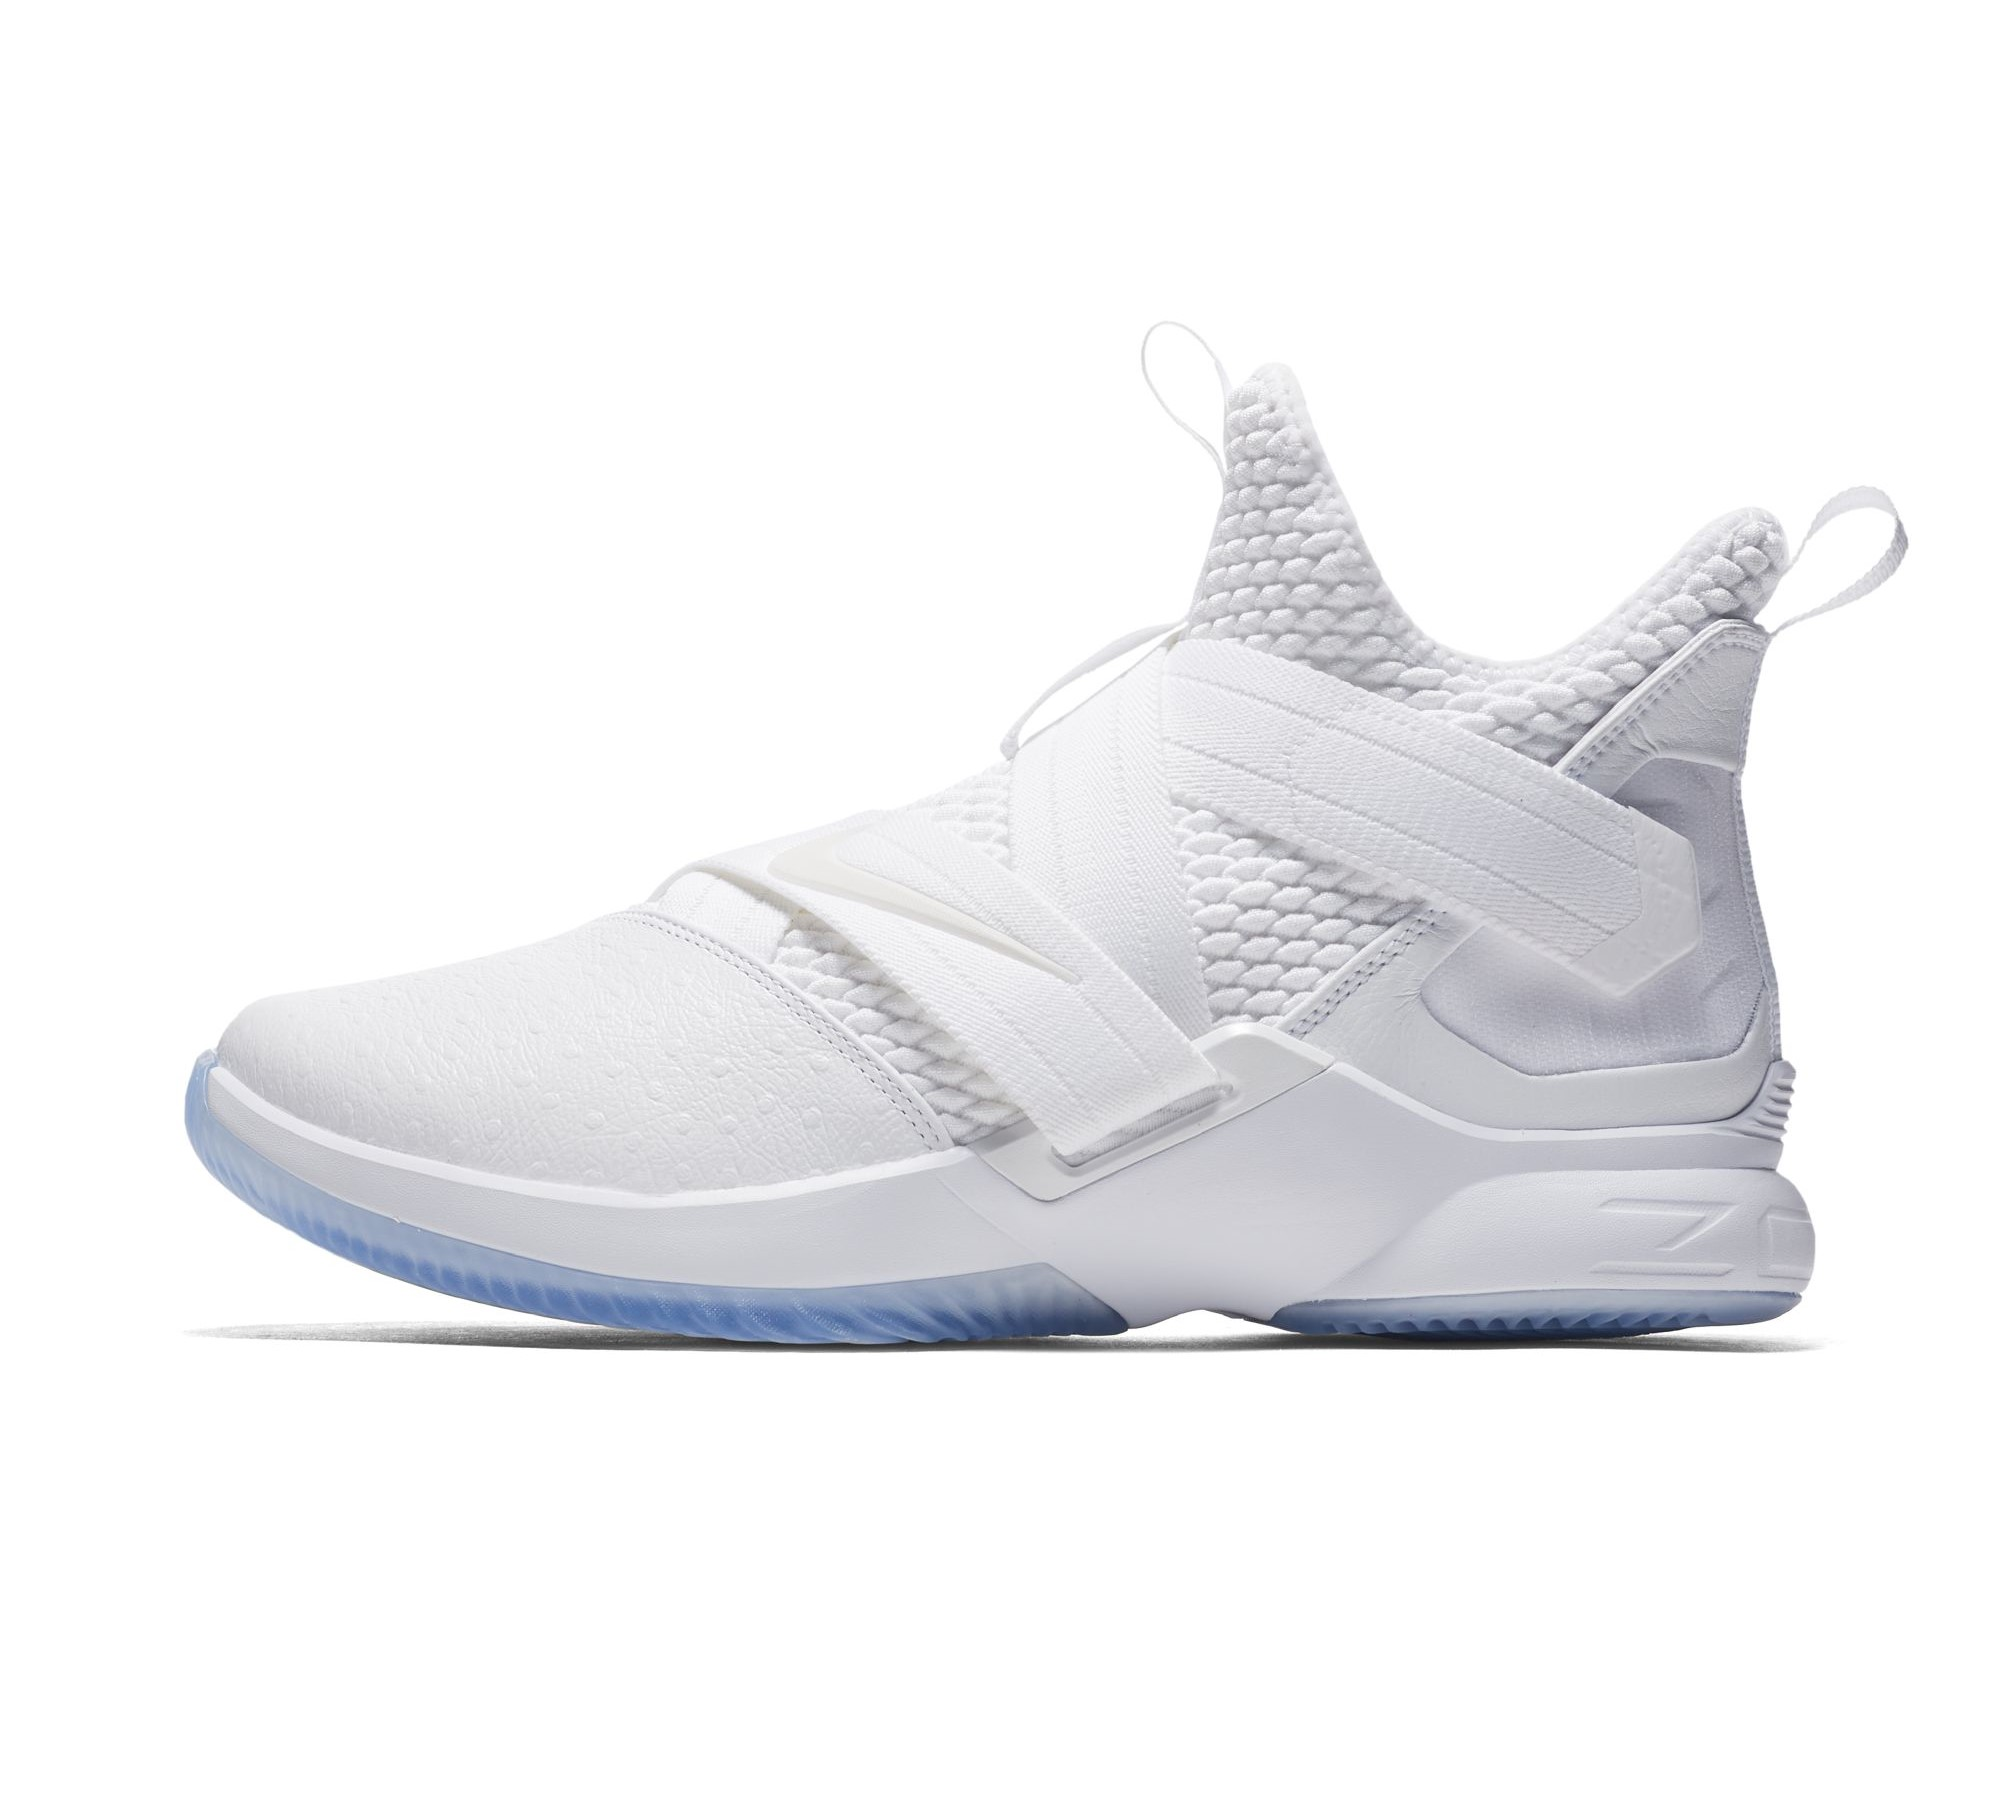 newest 55a29 aaadf The Nike LeBron Soldier 12 'Triple White' Releases Next ...